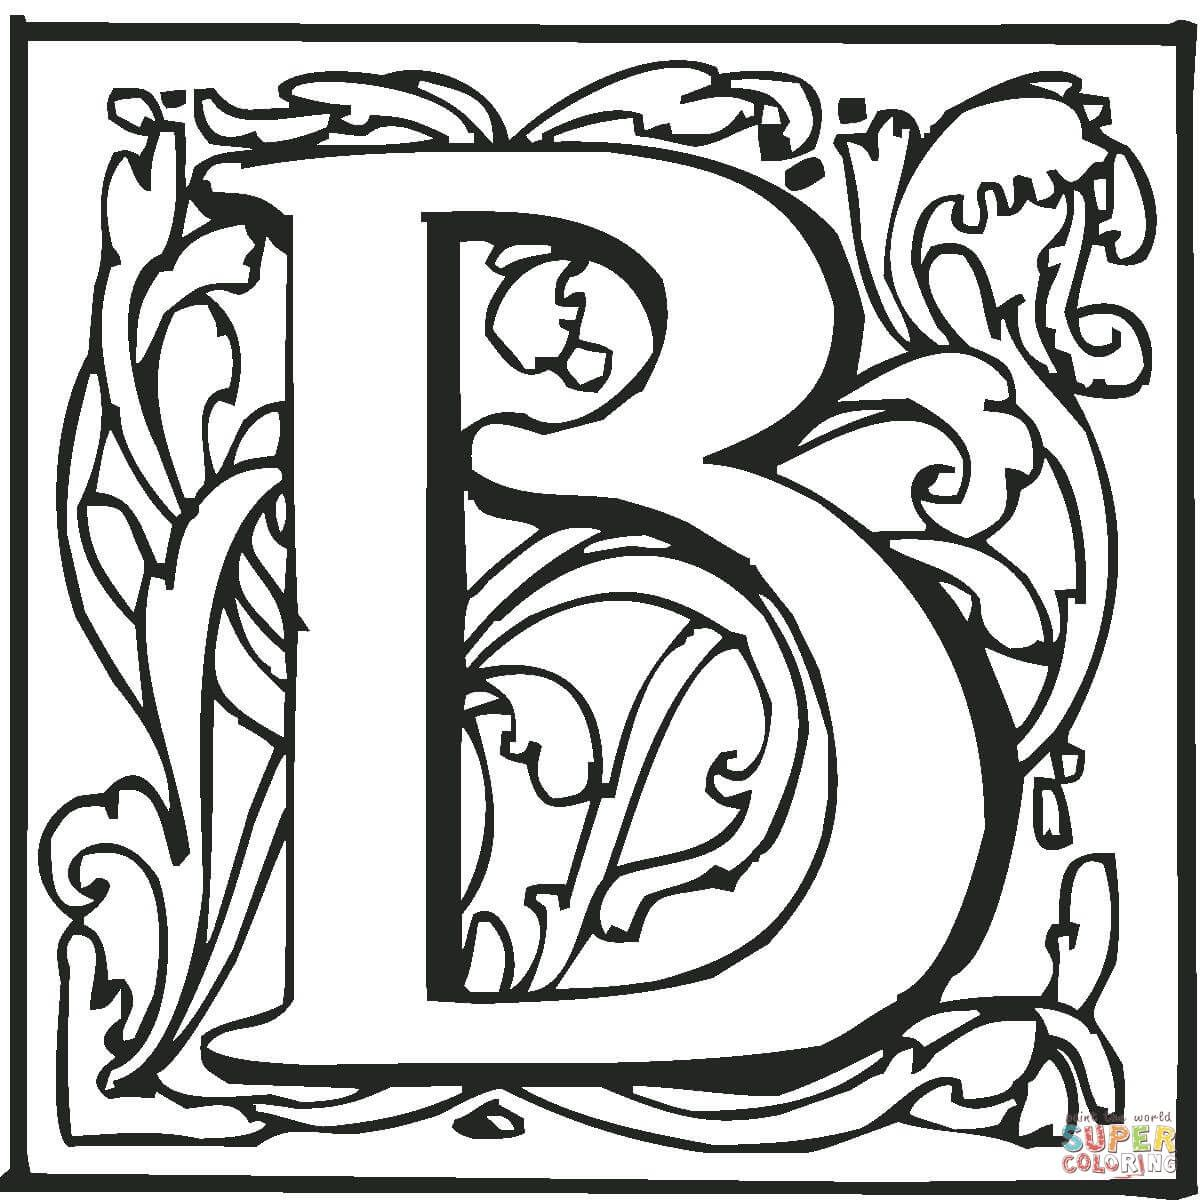 Letter B With Ornament Coloring Page From English Alphabet With Ornaments Category Select From